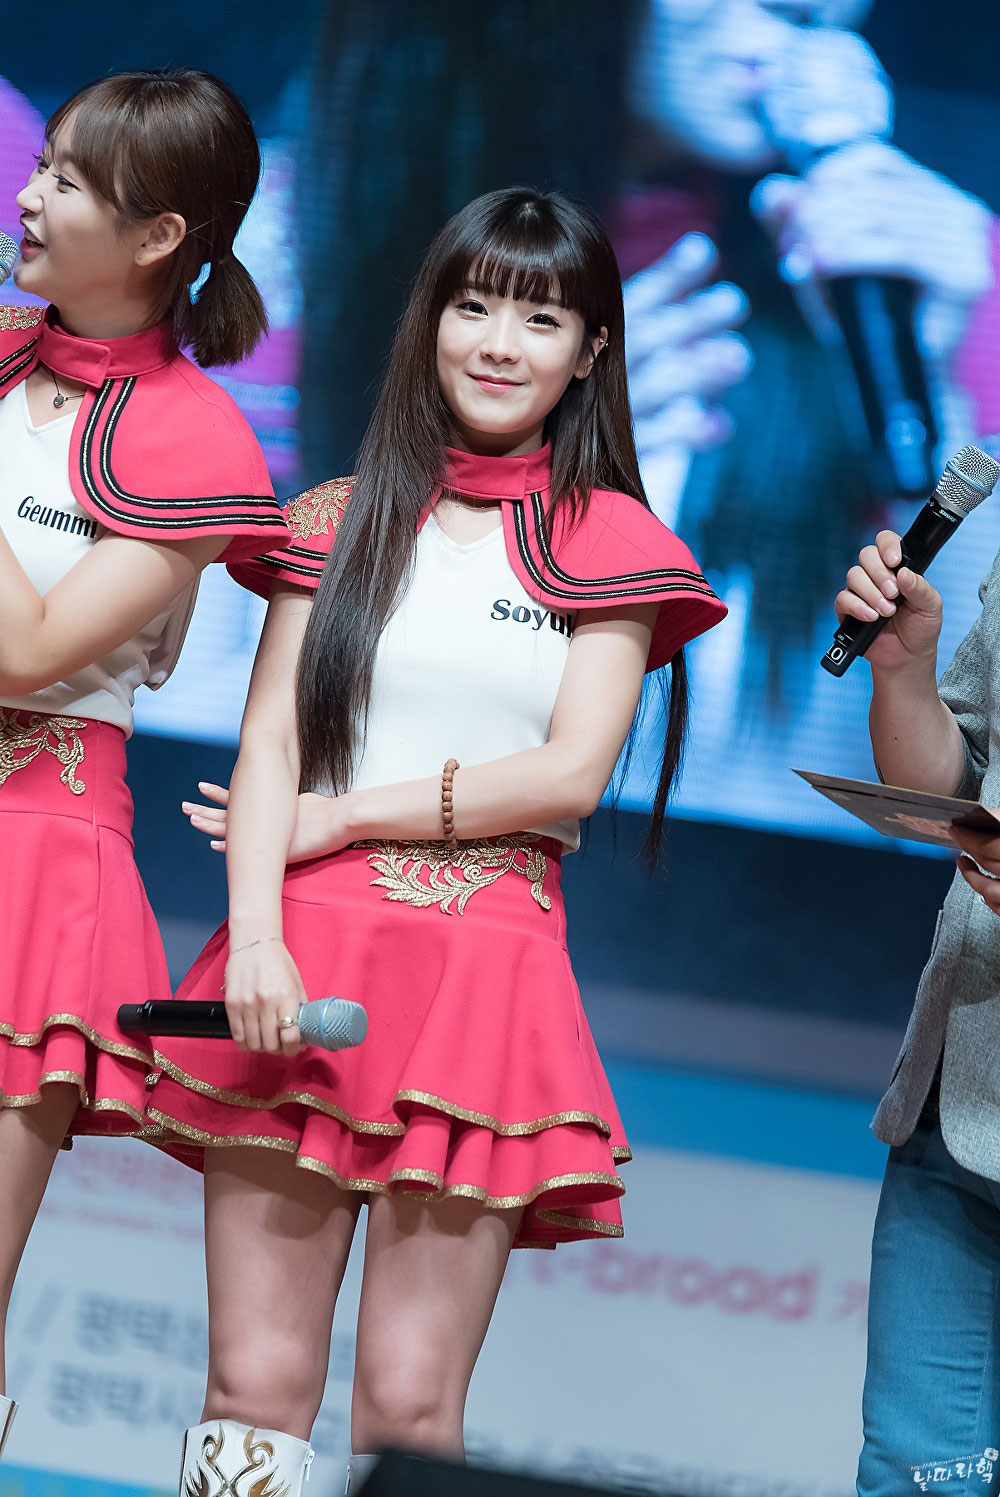 Crayon Pop Soyul Pyeongtaek youth event